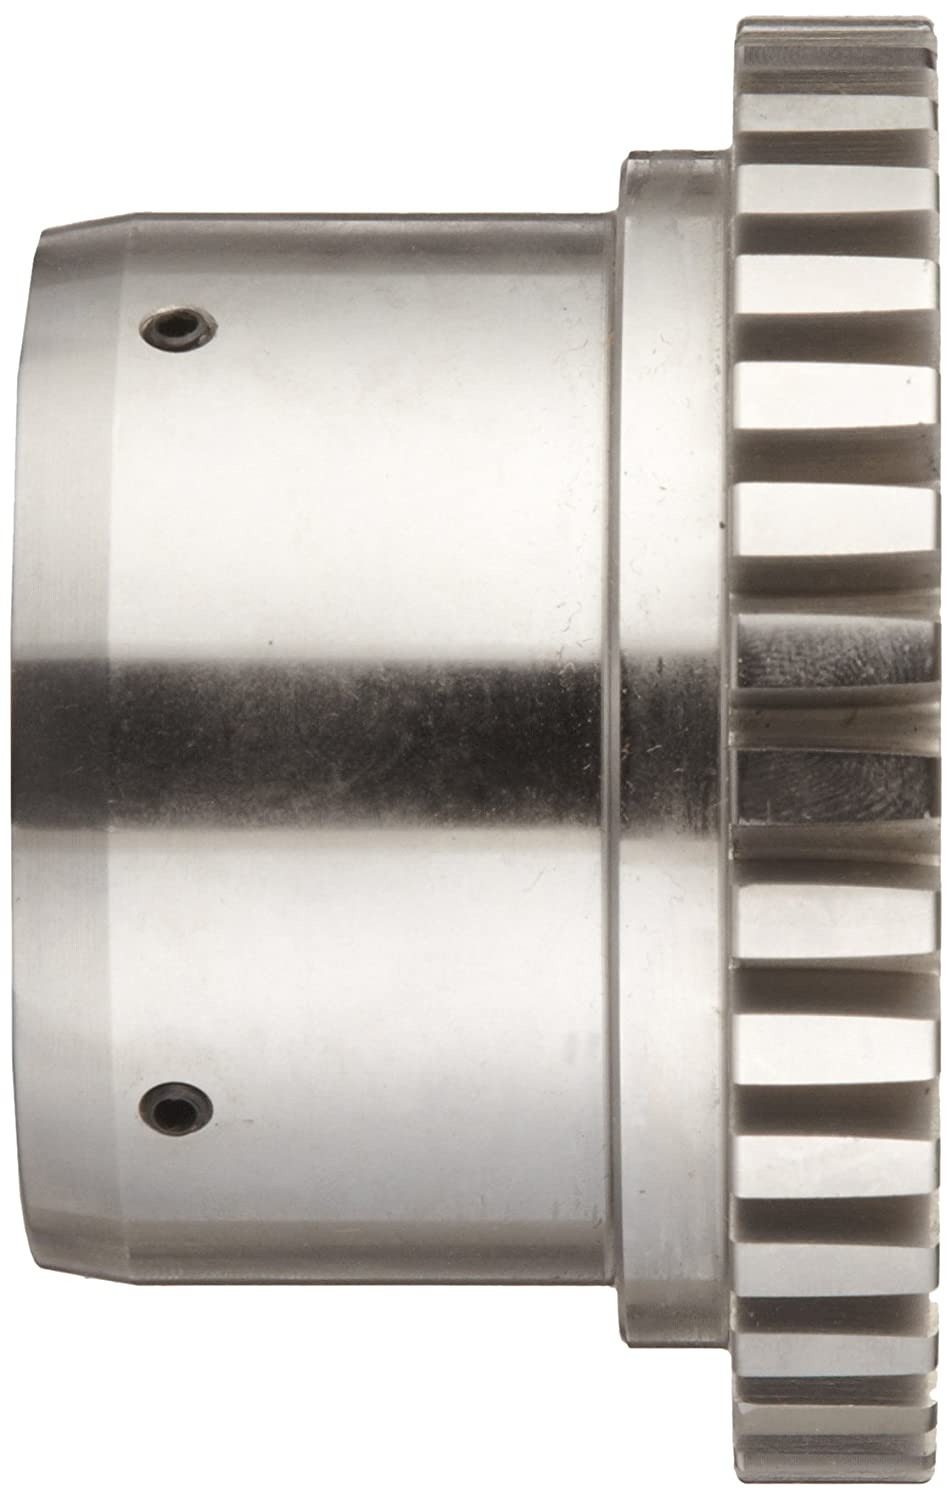 14 mm x 3.8 mm Keyway 435 Nm Max Torque Metric 123.952 mm Overall Coupling Length 45 mm  Bore Lovejoy 11555 Size 1050 Grid Coupling Hub